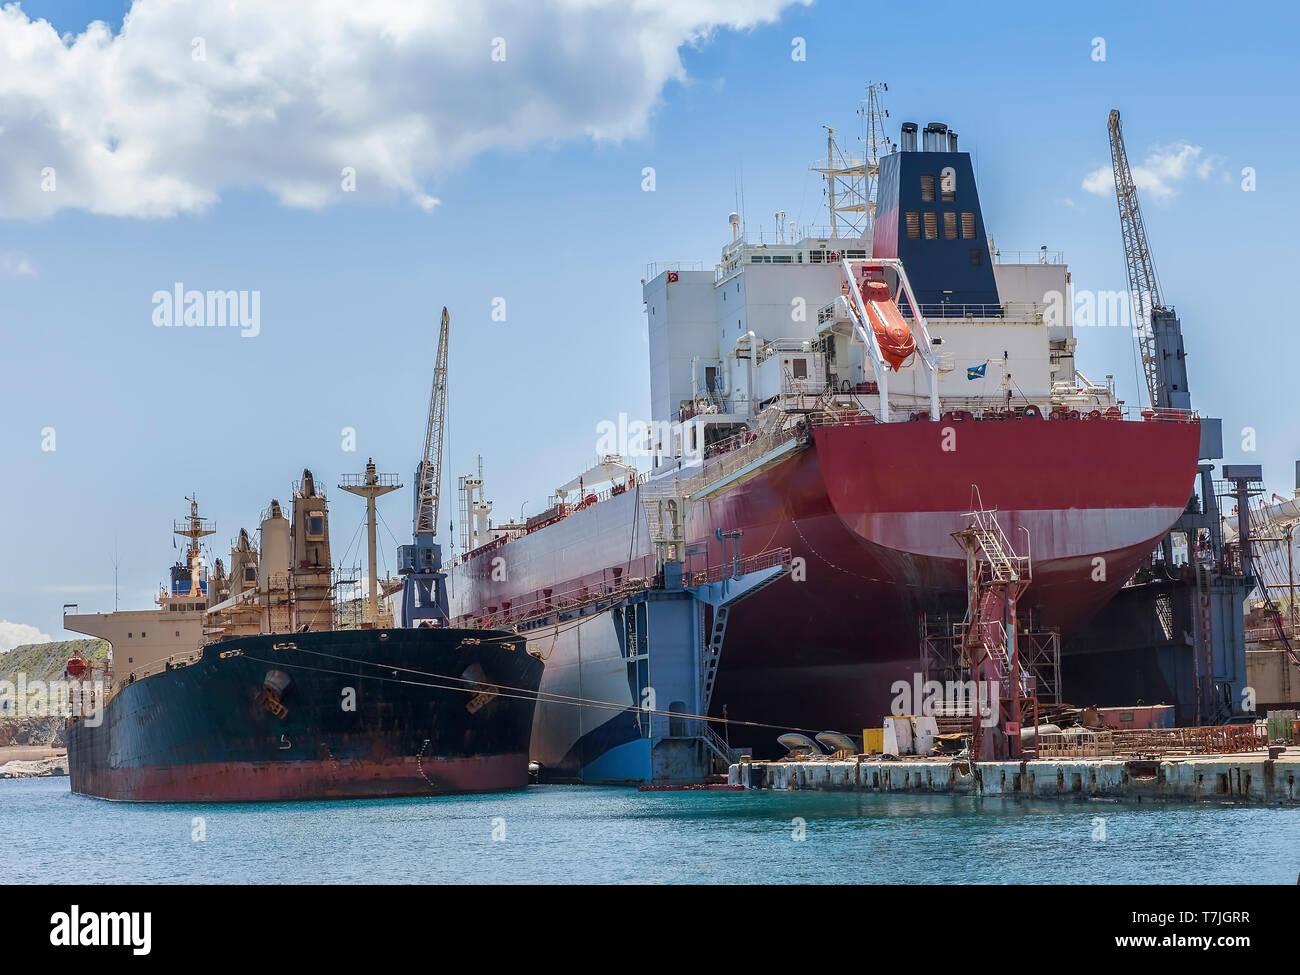 Bulk Carrier On Dry Dock In Shipyard. Heavy lifts cargo ship temporary  laid up next to dry dock. Stock Image. - Stock Image